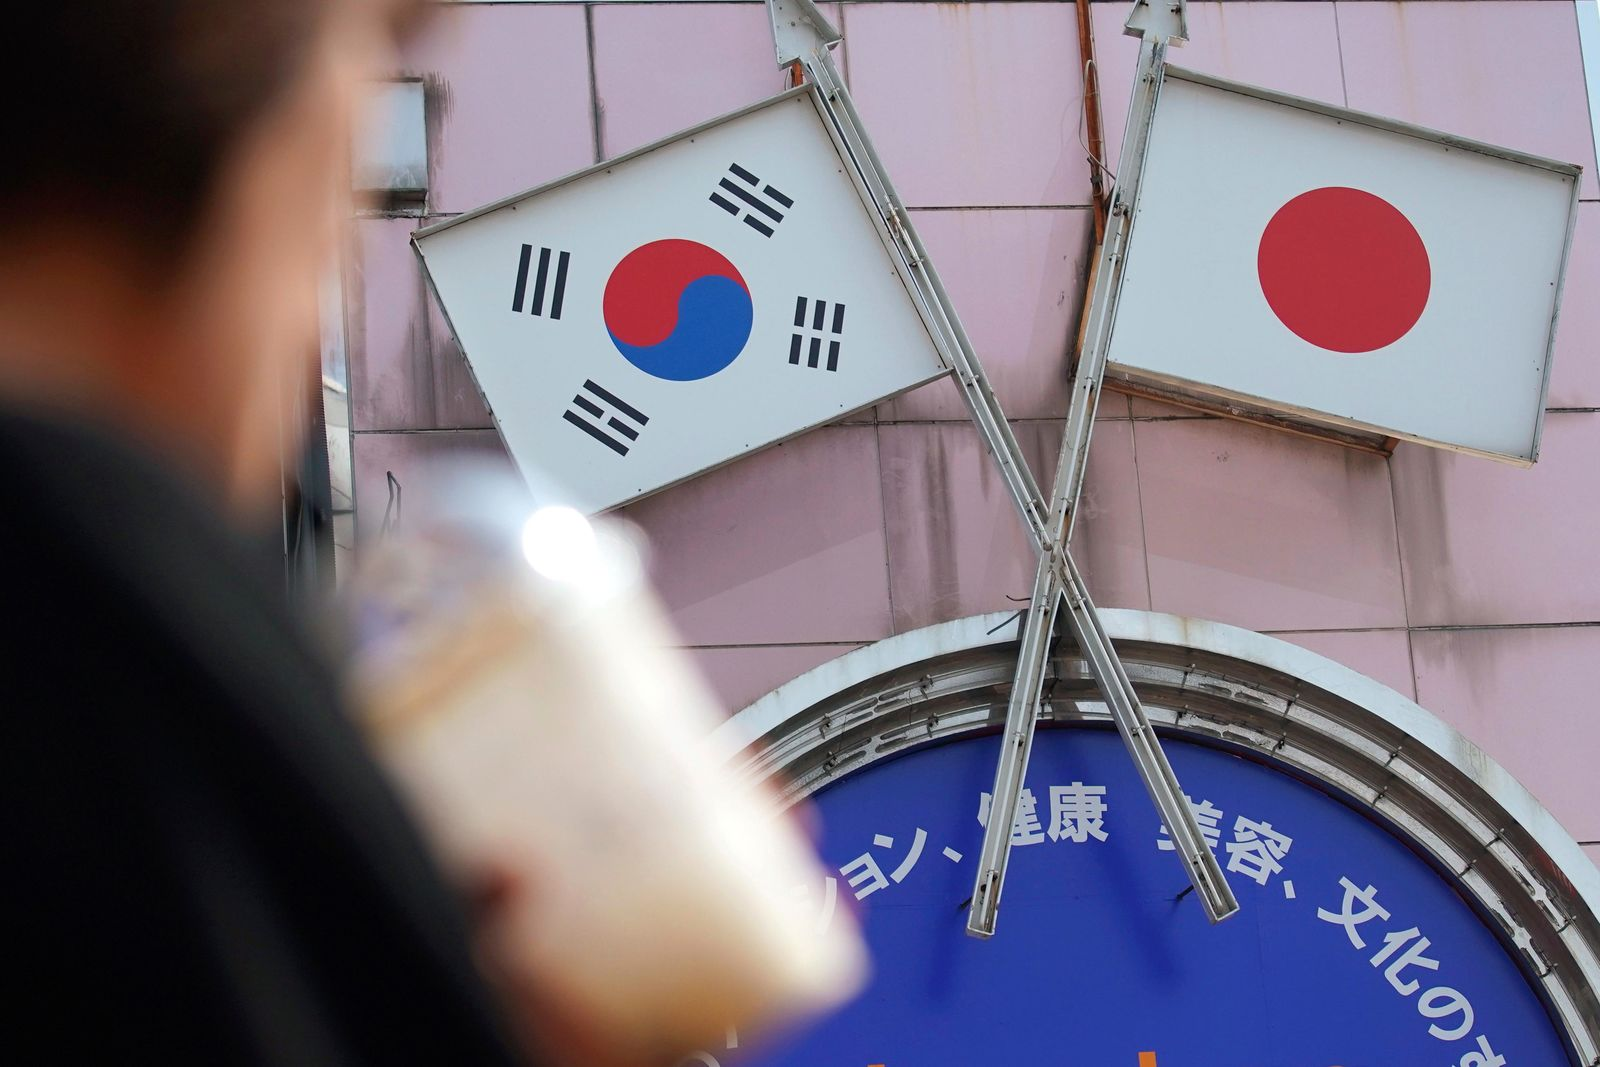 FILE - In this Aug. 2, 2019, file photo, a woman walks past an advertisement featuring Japanese and South Korean flags at a shop in Shin Okubo area in Tokyo. (AP Photo/Eugene Hoshiko, File)